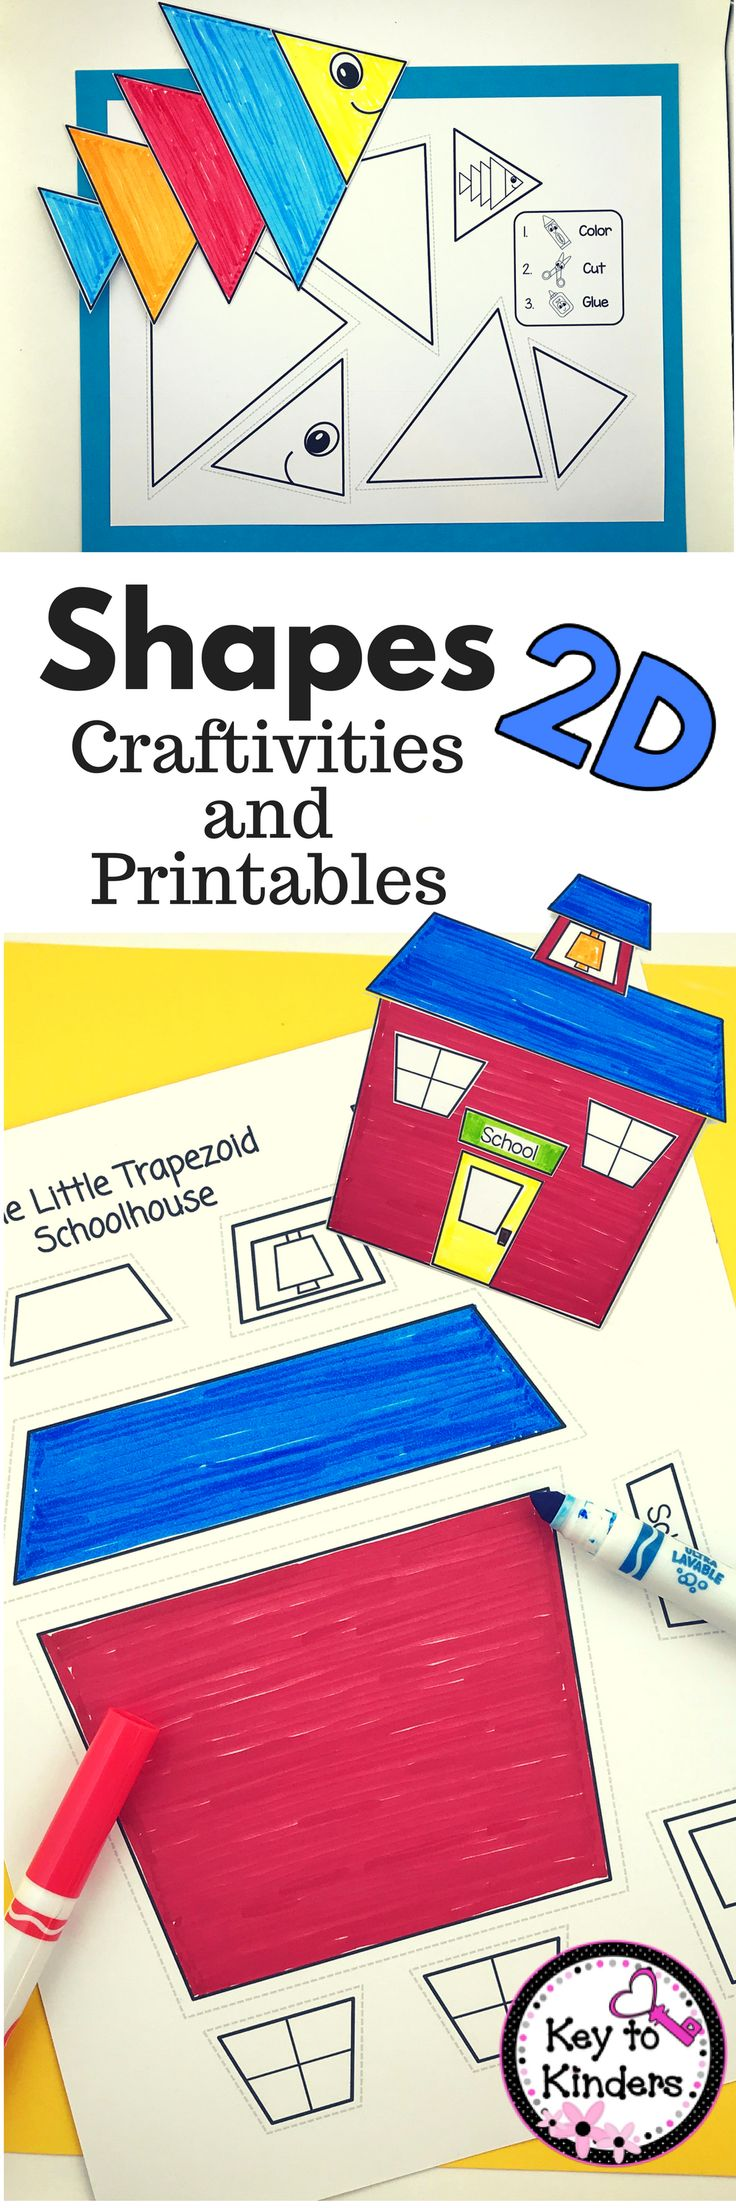 This 2D Shapes unit uses NO PREP crafts and meaningful printables to reinforce shapes for Preschool, Kindergarten or First Grade students. Grab it now!